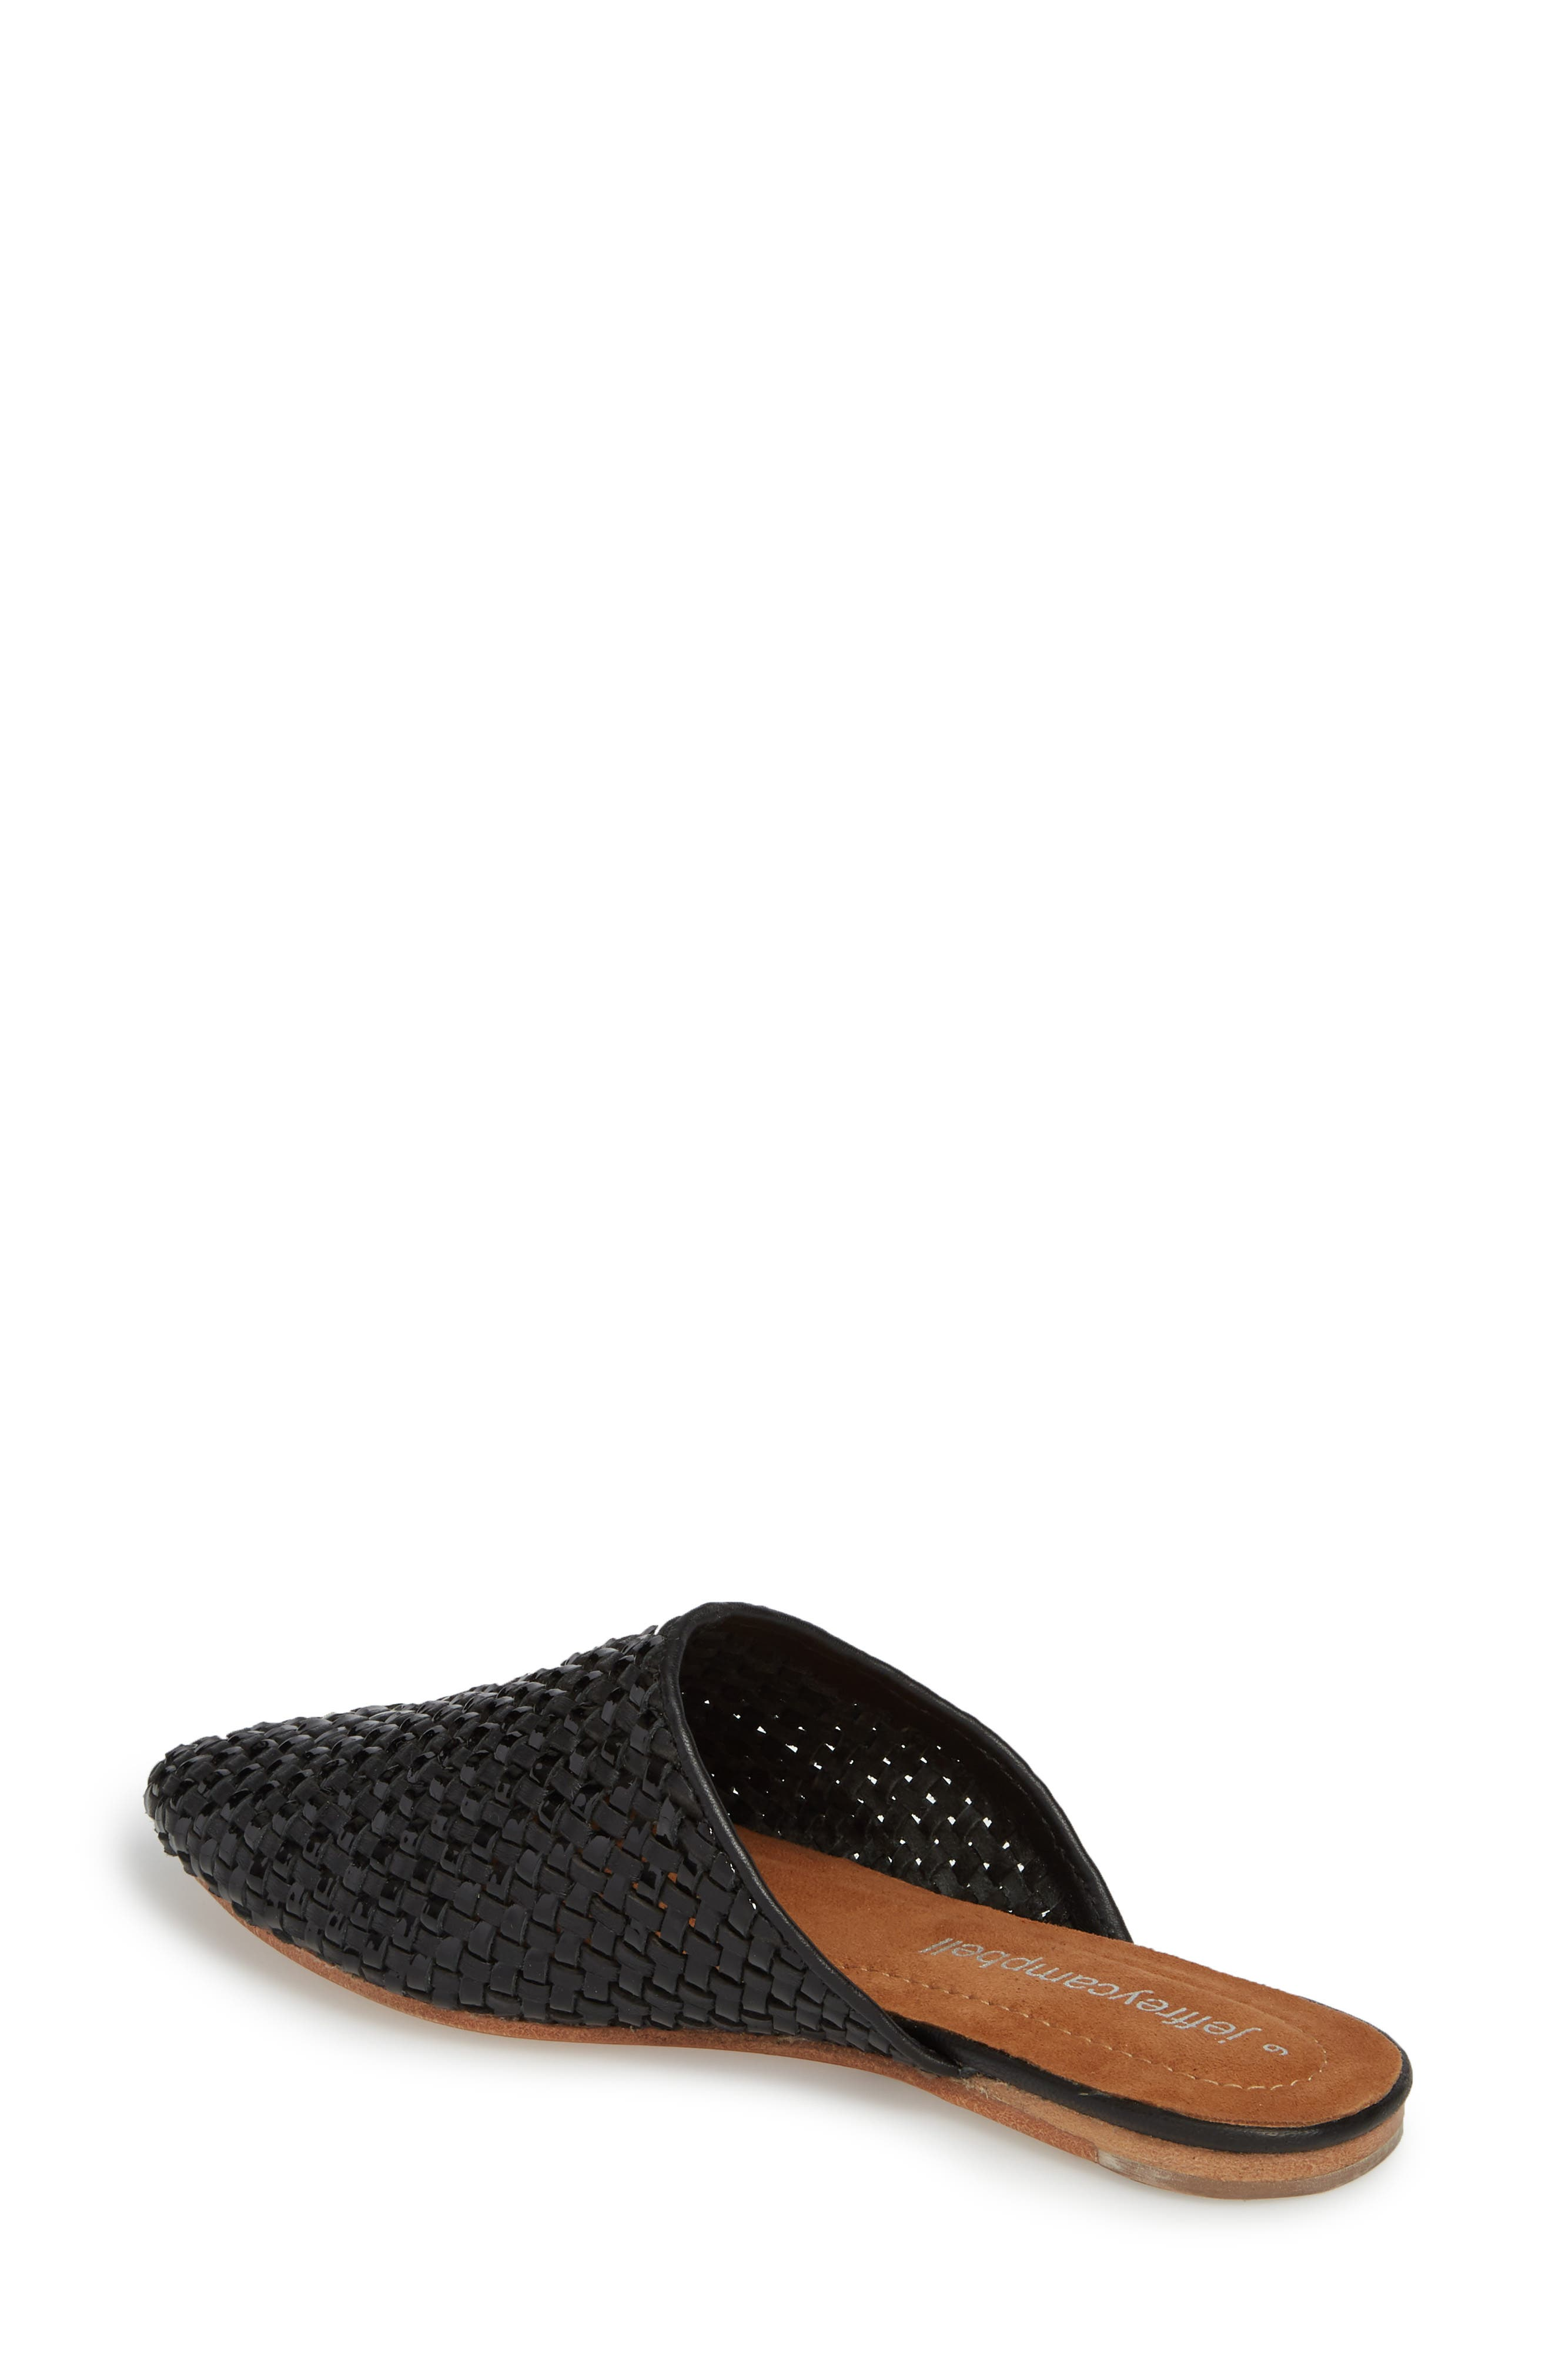 Dashi Woven Mule,                             Alternate thumbnail 2, color,                             BLACK PATENT